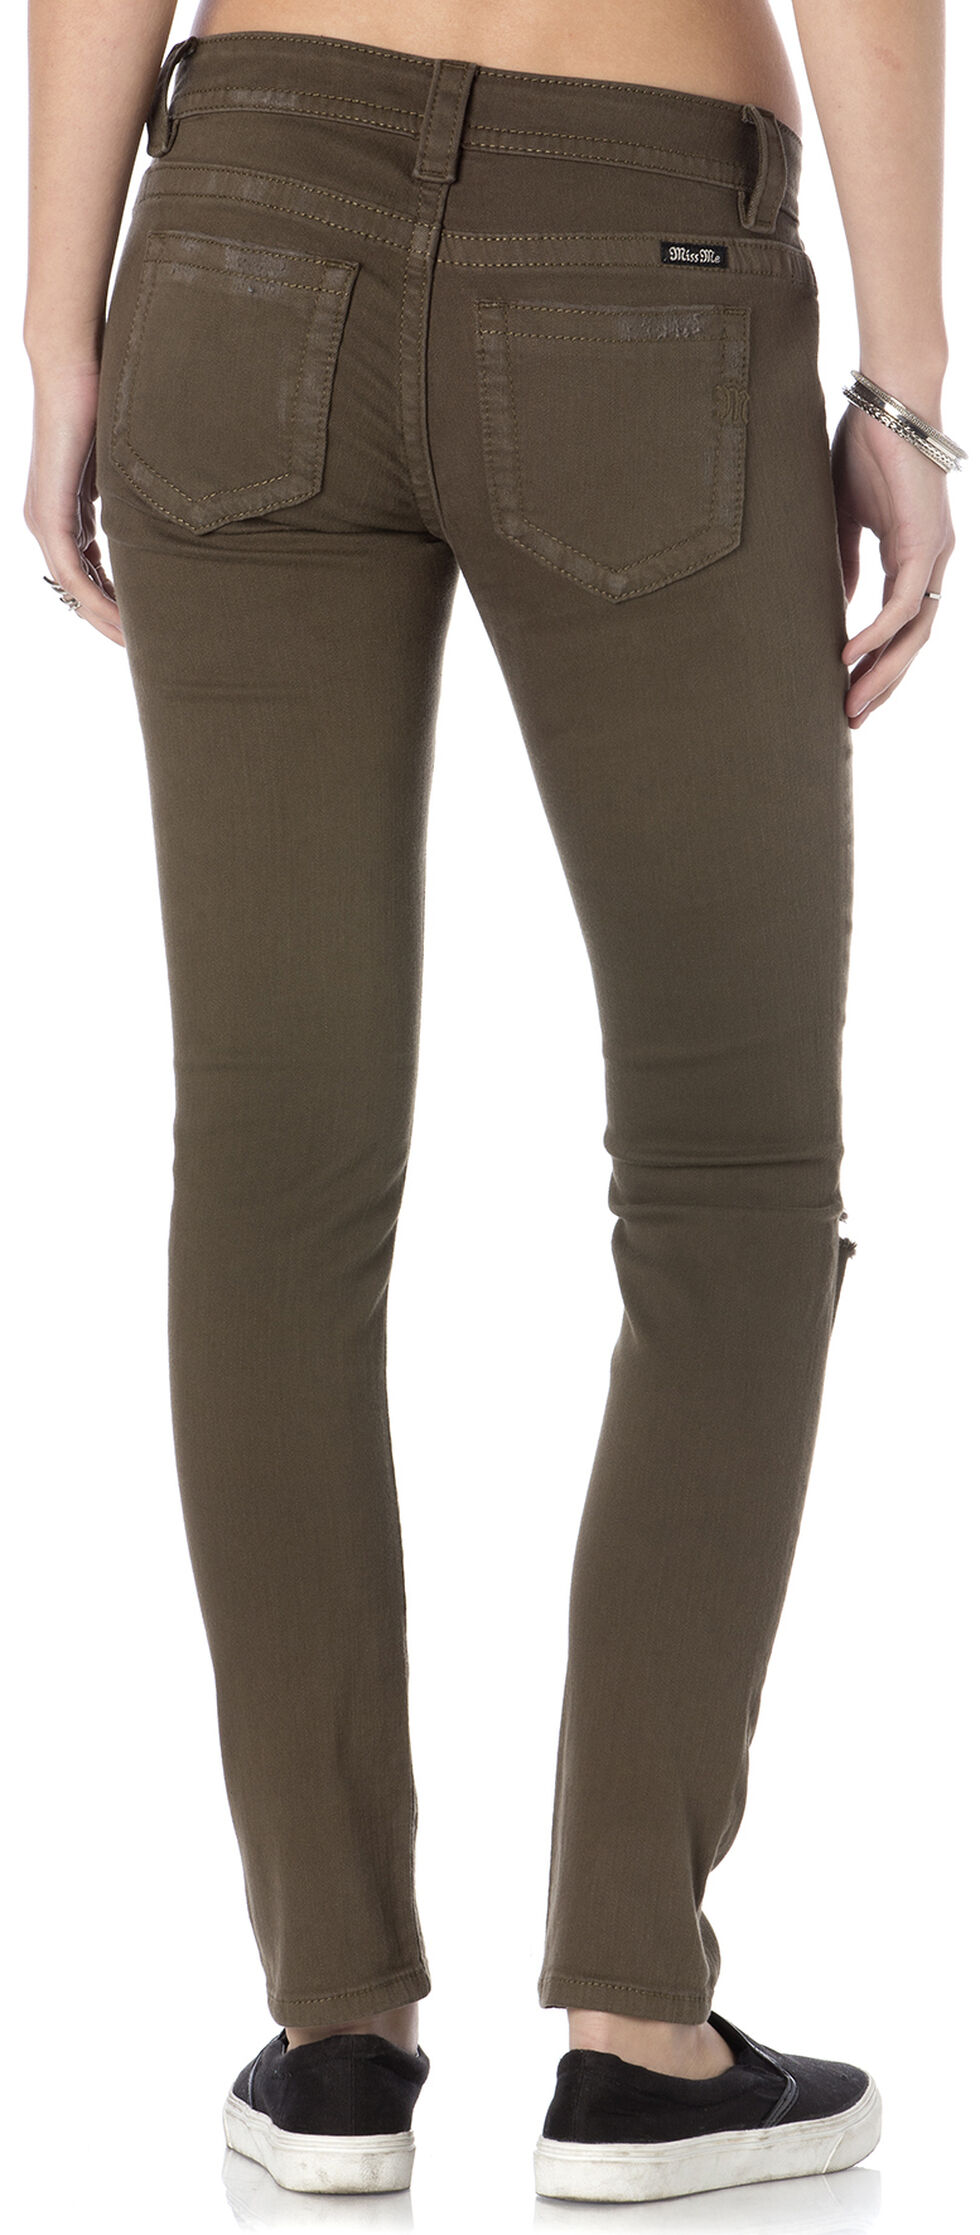 Miss Me Women's Forward March Army Green Skinny Jeans, Olive, hi-res